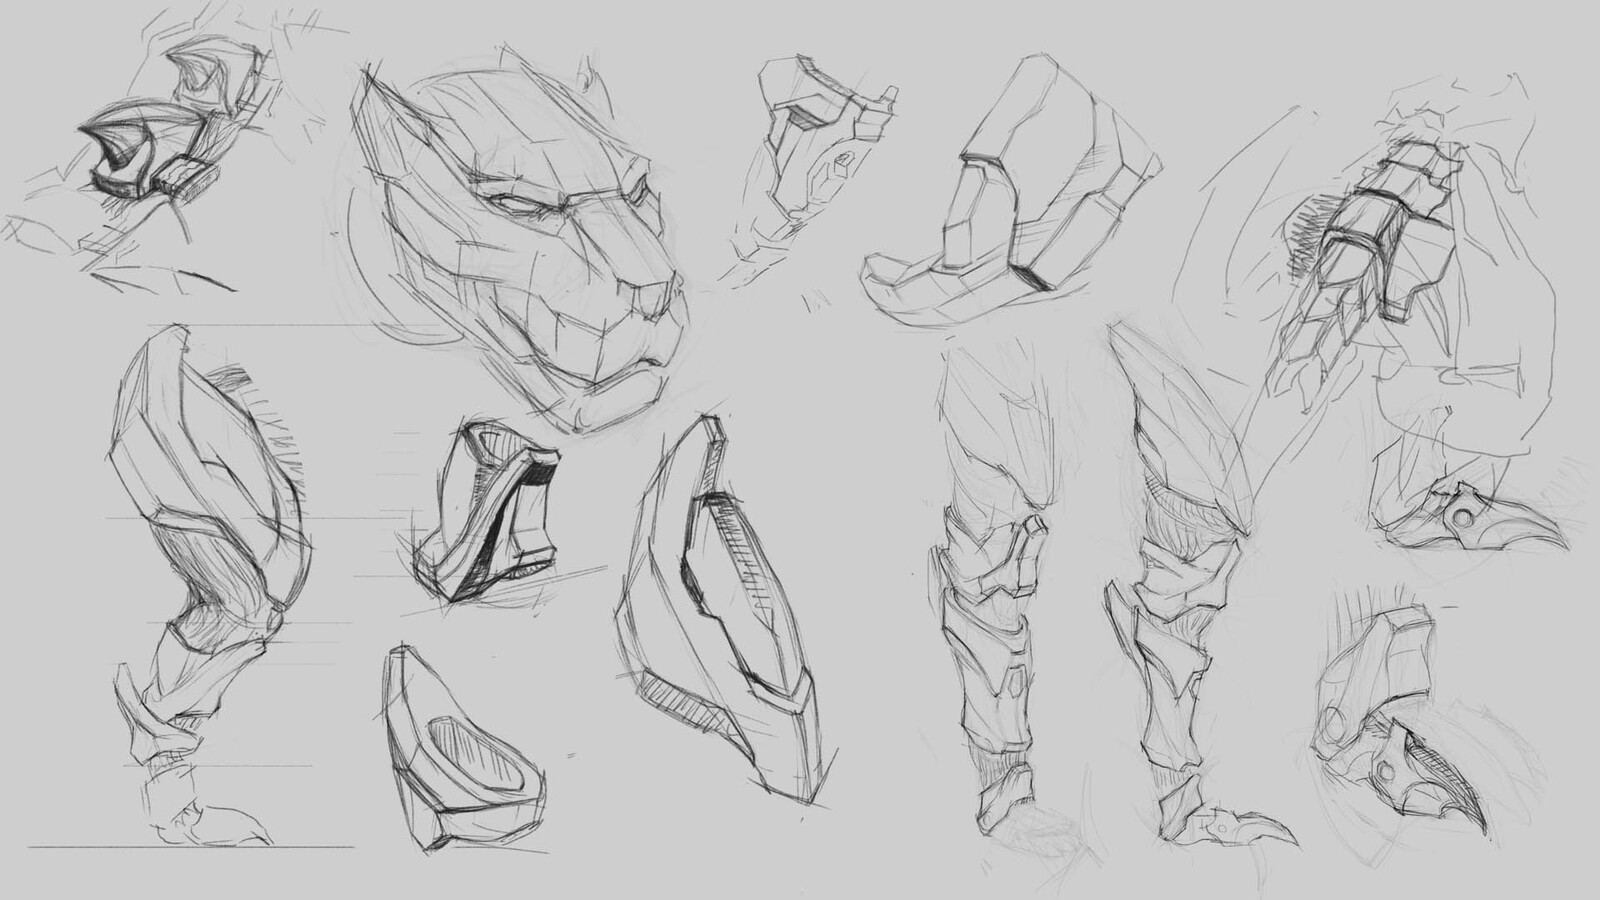 After break-up I isolated each piece and tried to refine the shapes. Dunno if this actually helped to be honest